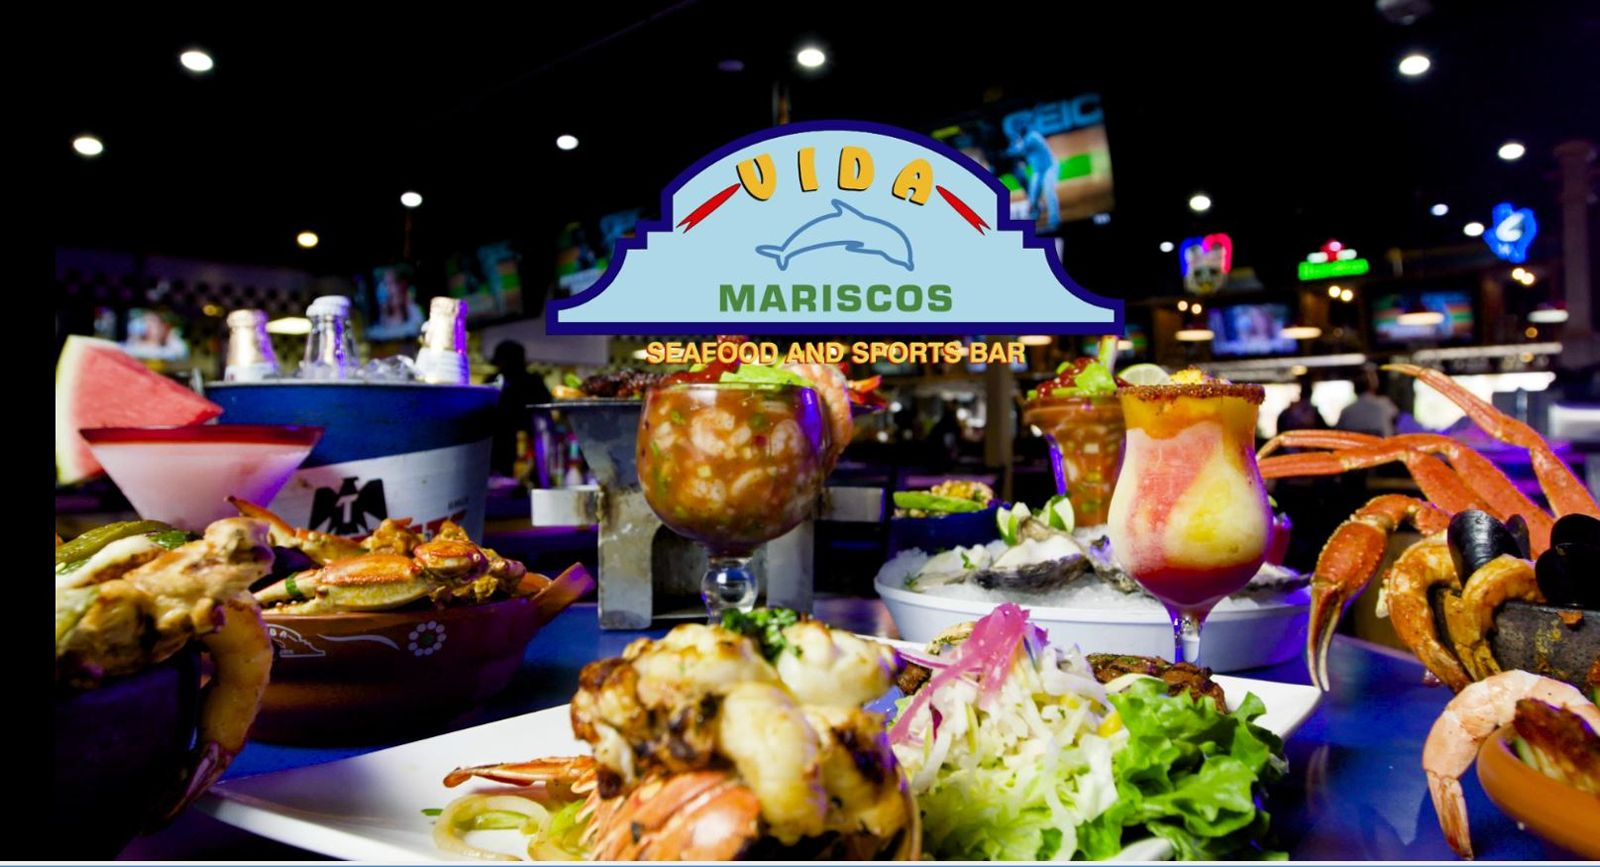 Local Mexican Seafood Eatery, Vida Mariscos, Set To Open Second Location in Katy, Texas on September 15th